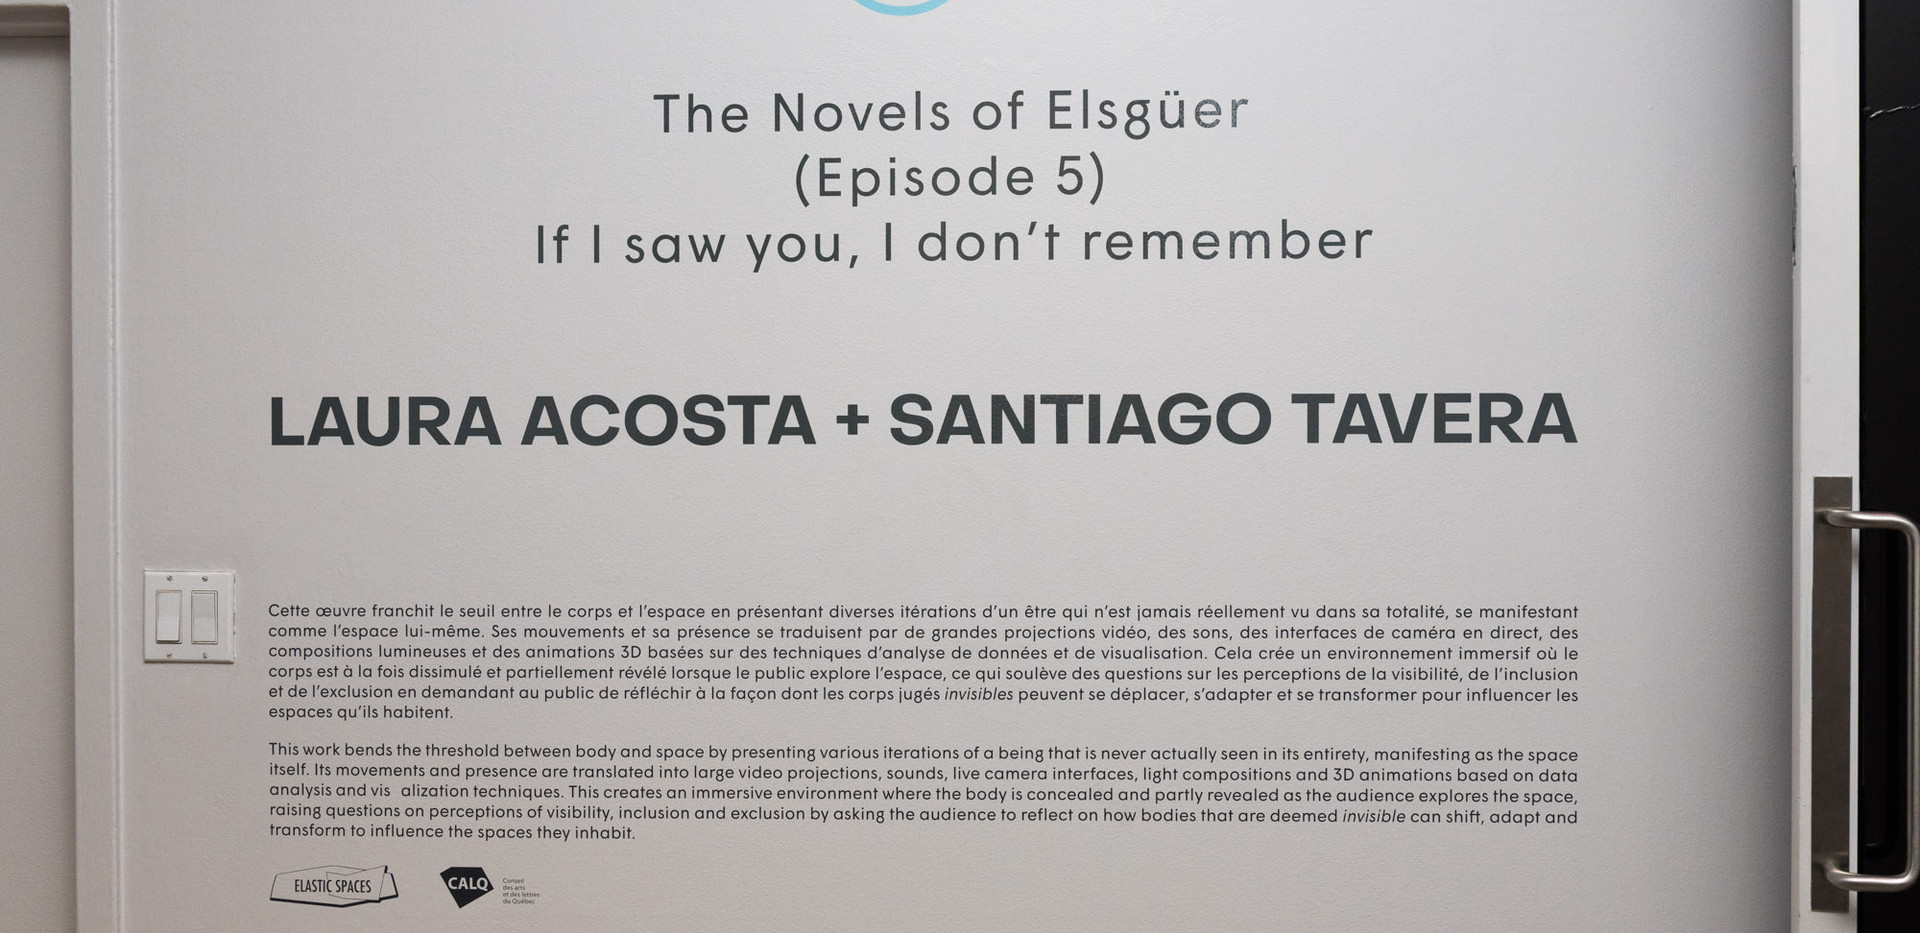 The Novels of Elsewhere (Ep 5) If I Saw You, I Don't Remember